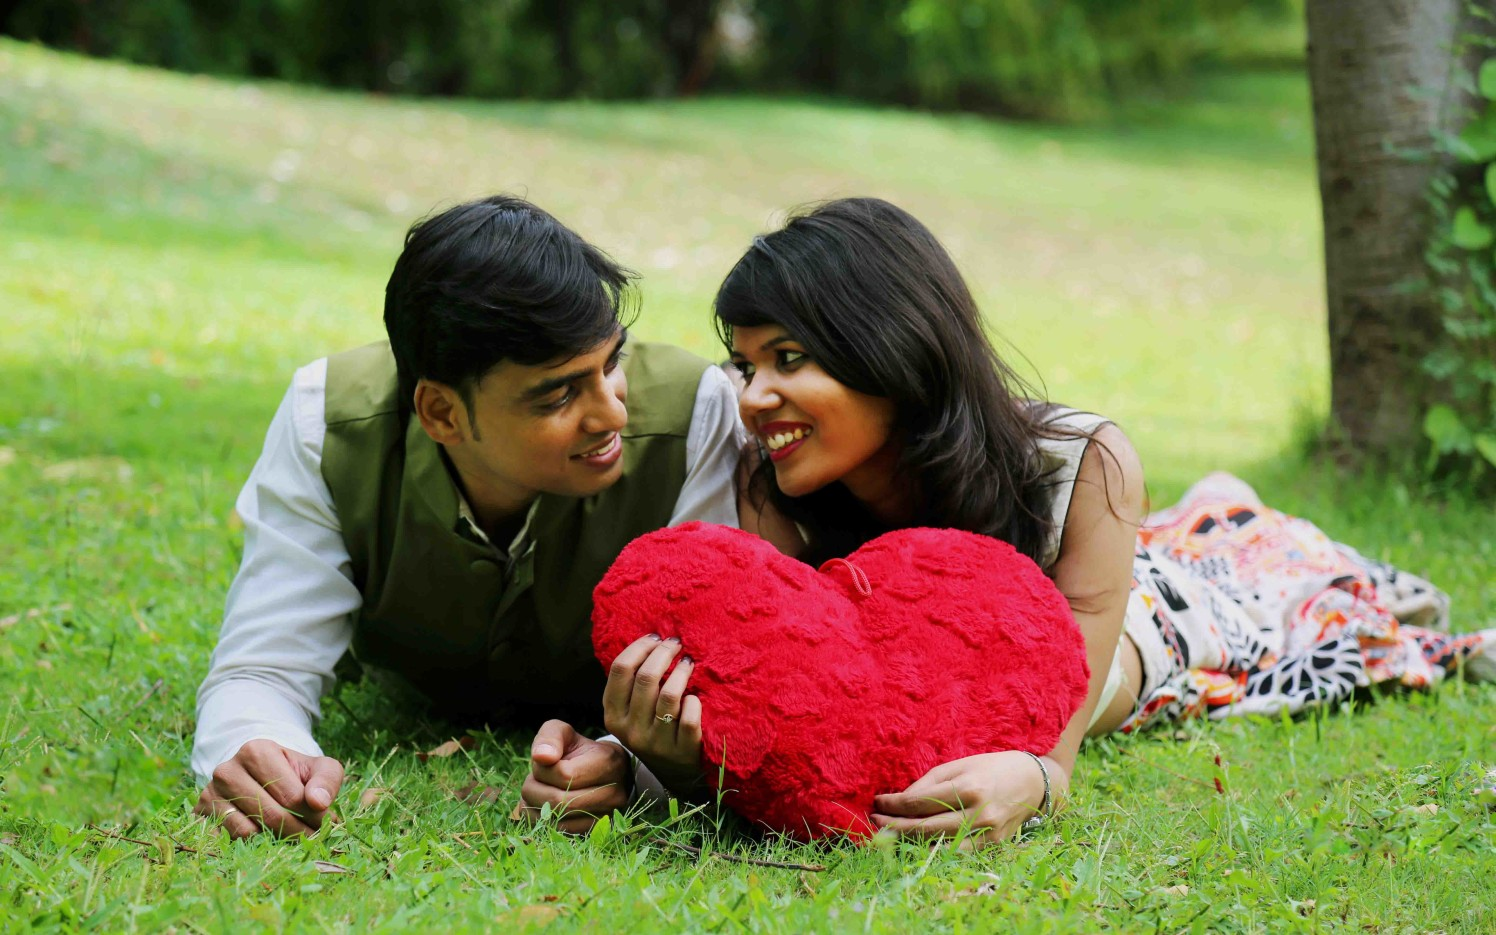 Bride and Groom To-Be Pose With a Heart Shaped Pillow Against a Picturesque Garden Background by Rushil Jadhav Wedding-photography | Weddings Photos & Ideas